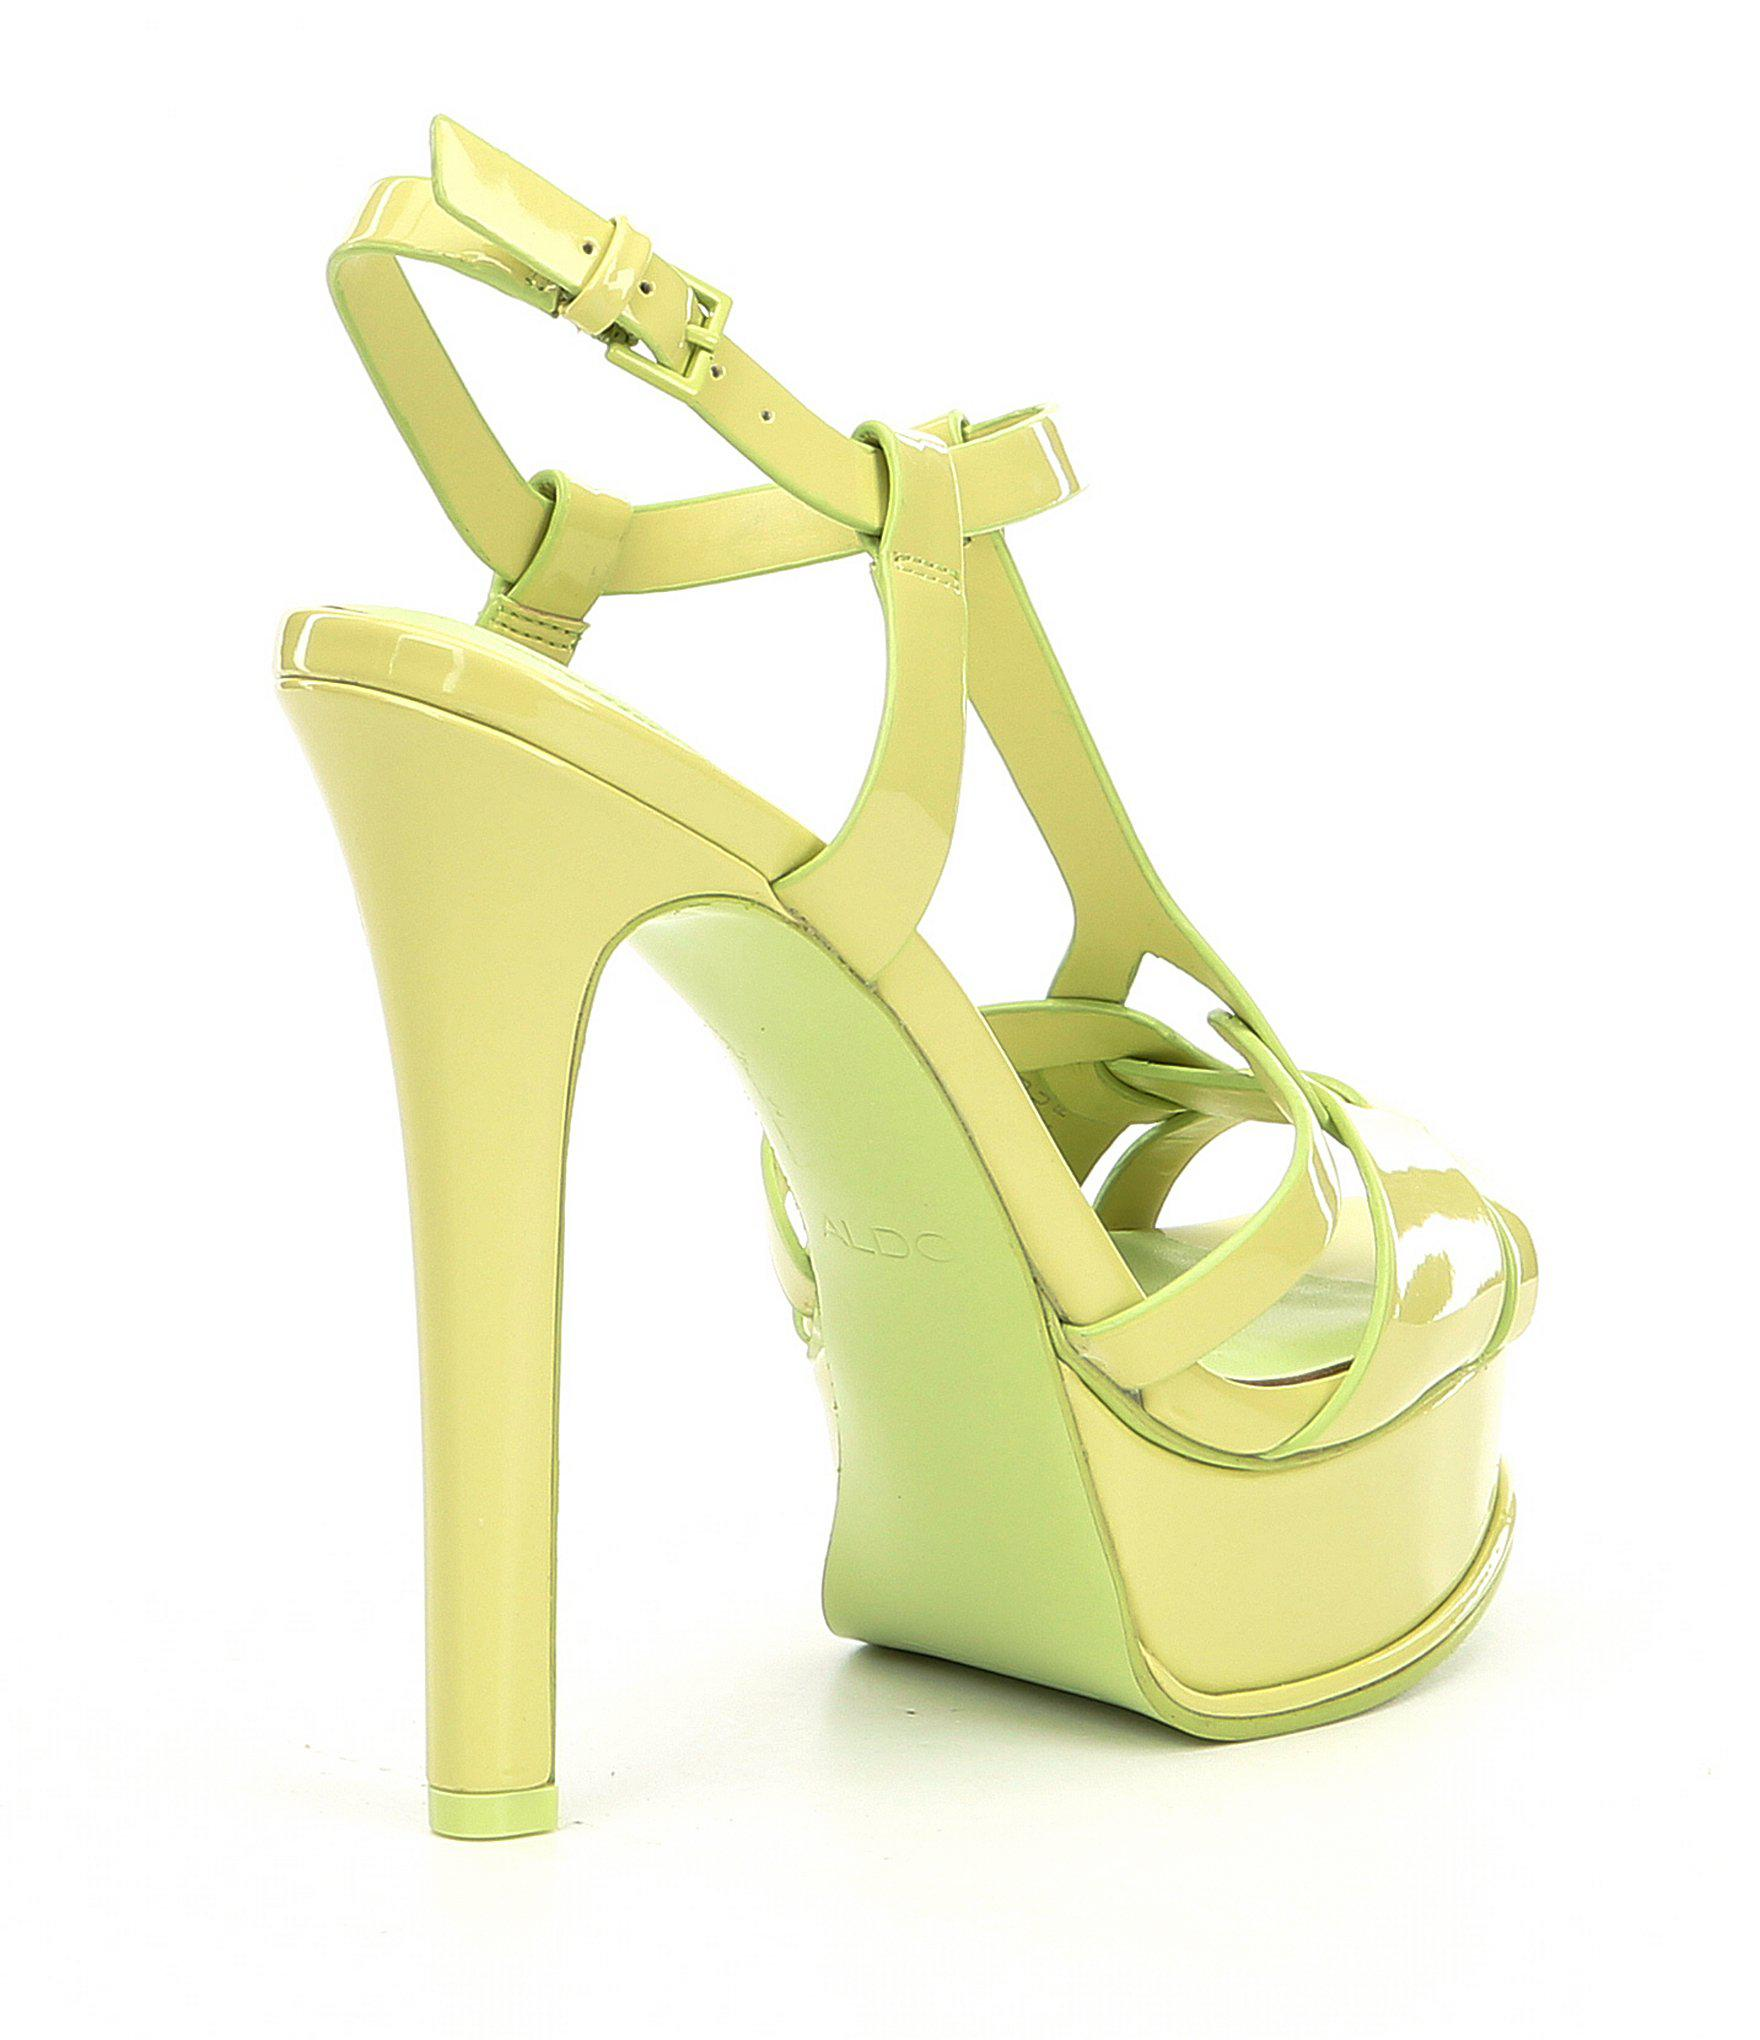 11eaeeaa815 Lyst - ALDO Chelly Platform Dress Sandals in Green